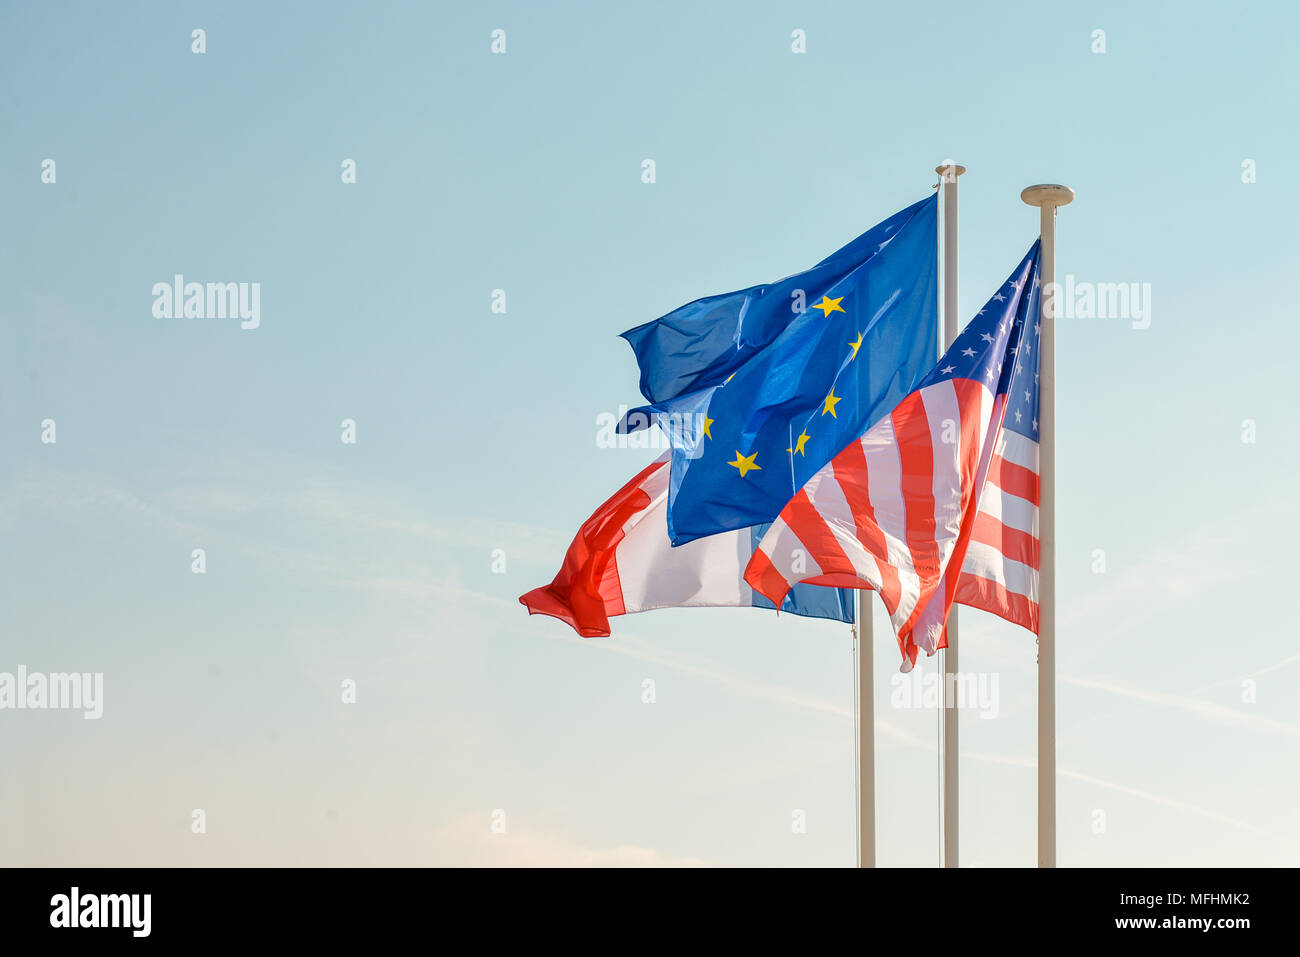 French American and European union Flags on blue sky - Stock Image